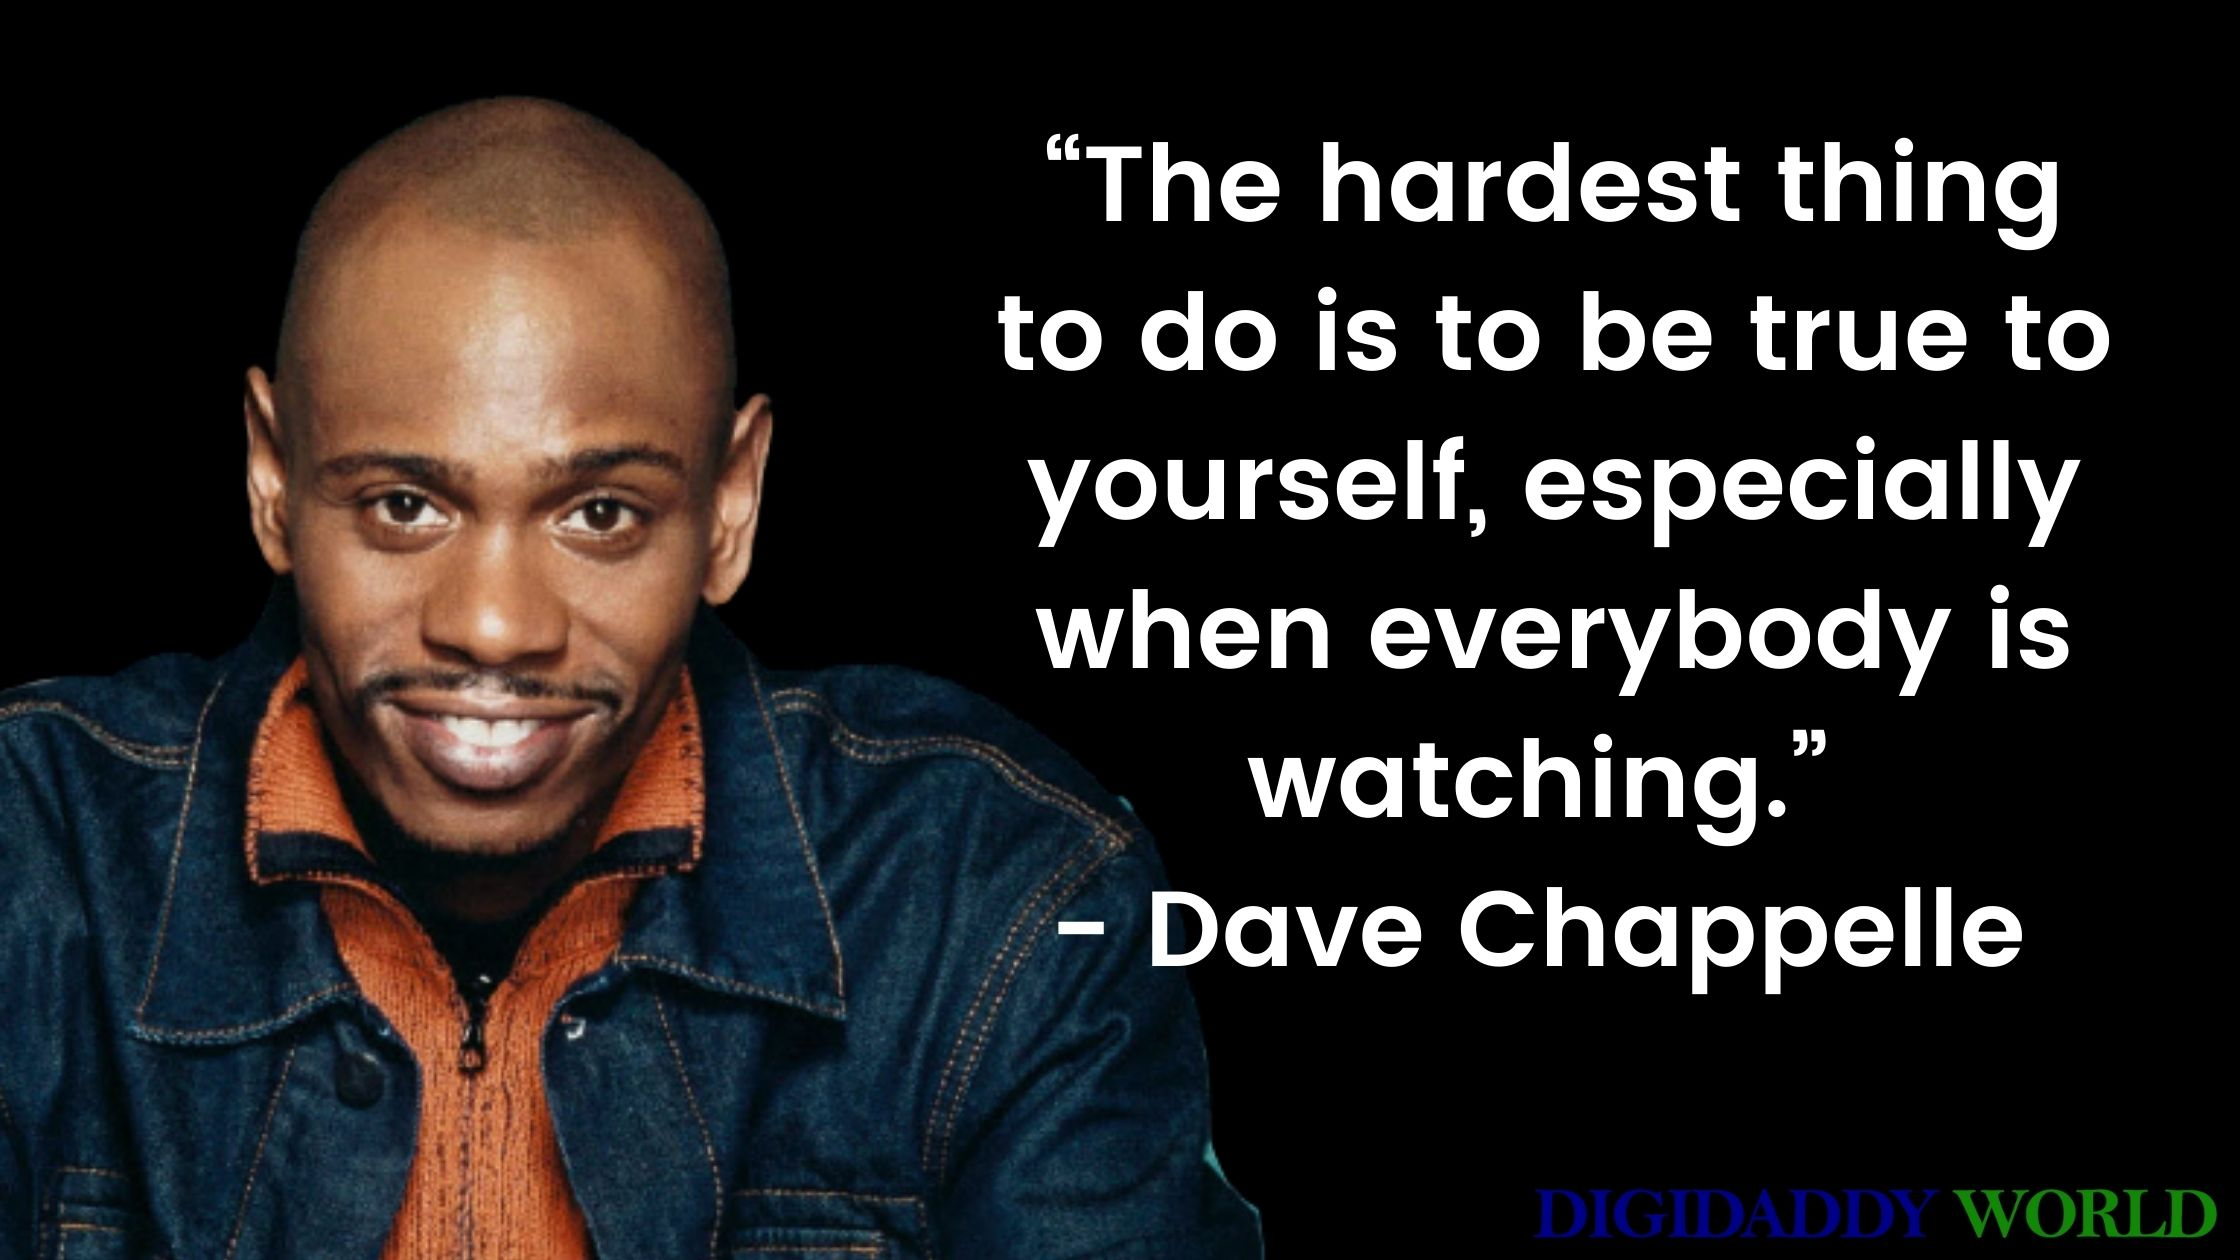 Dave Chappelle show quotes